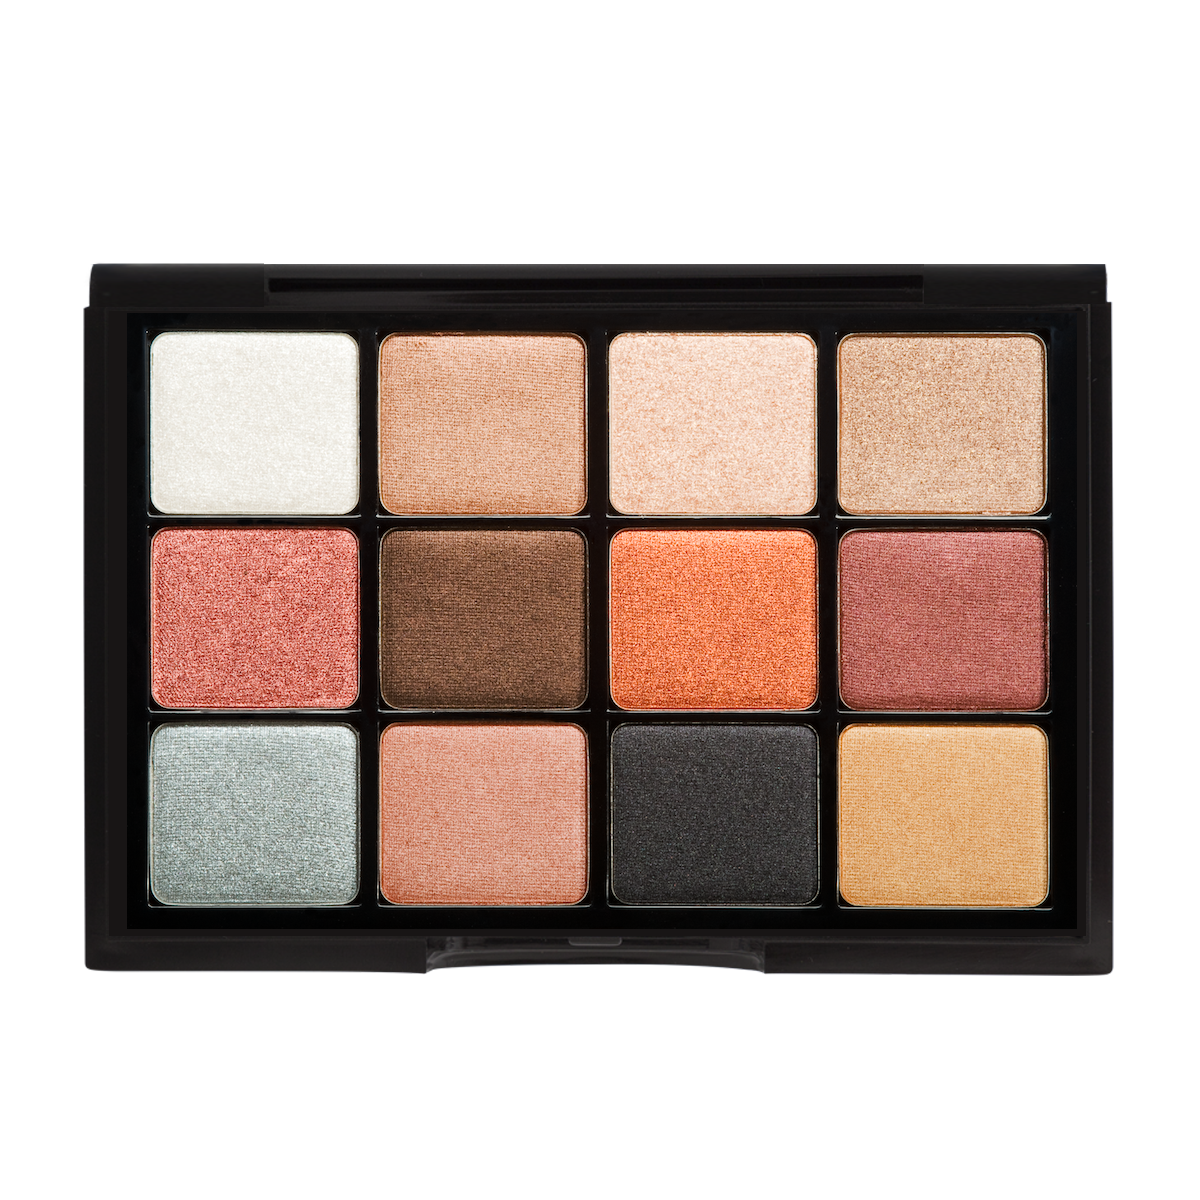 EYESHADOW PALETTE: SULTRY MUSE